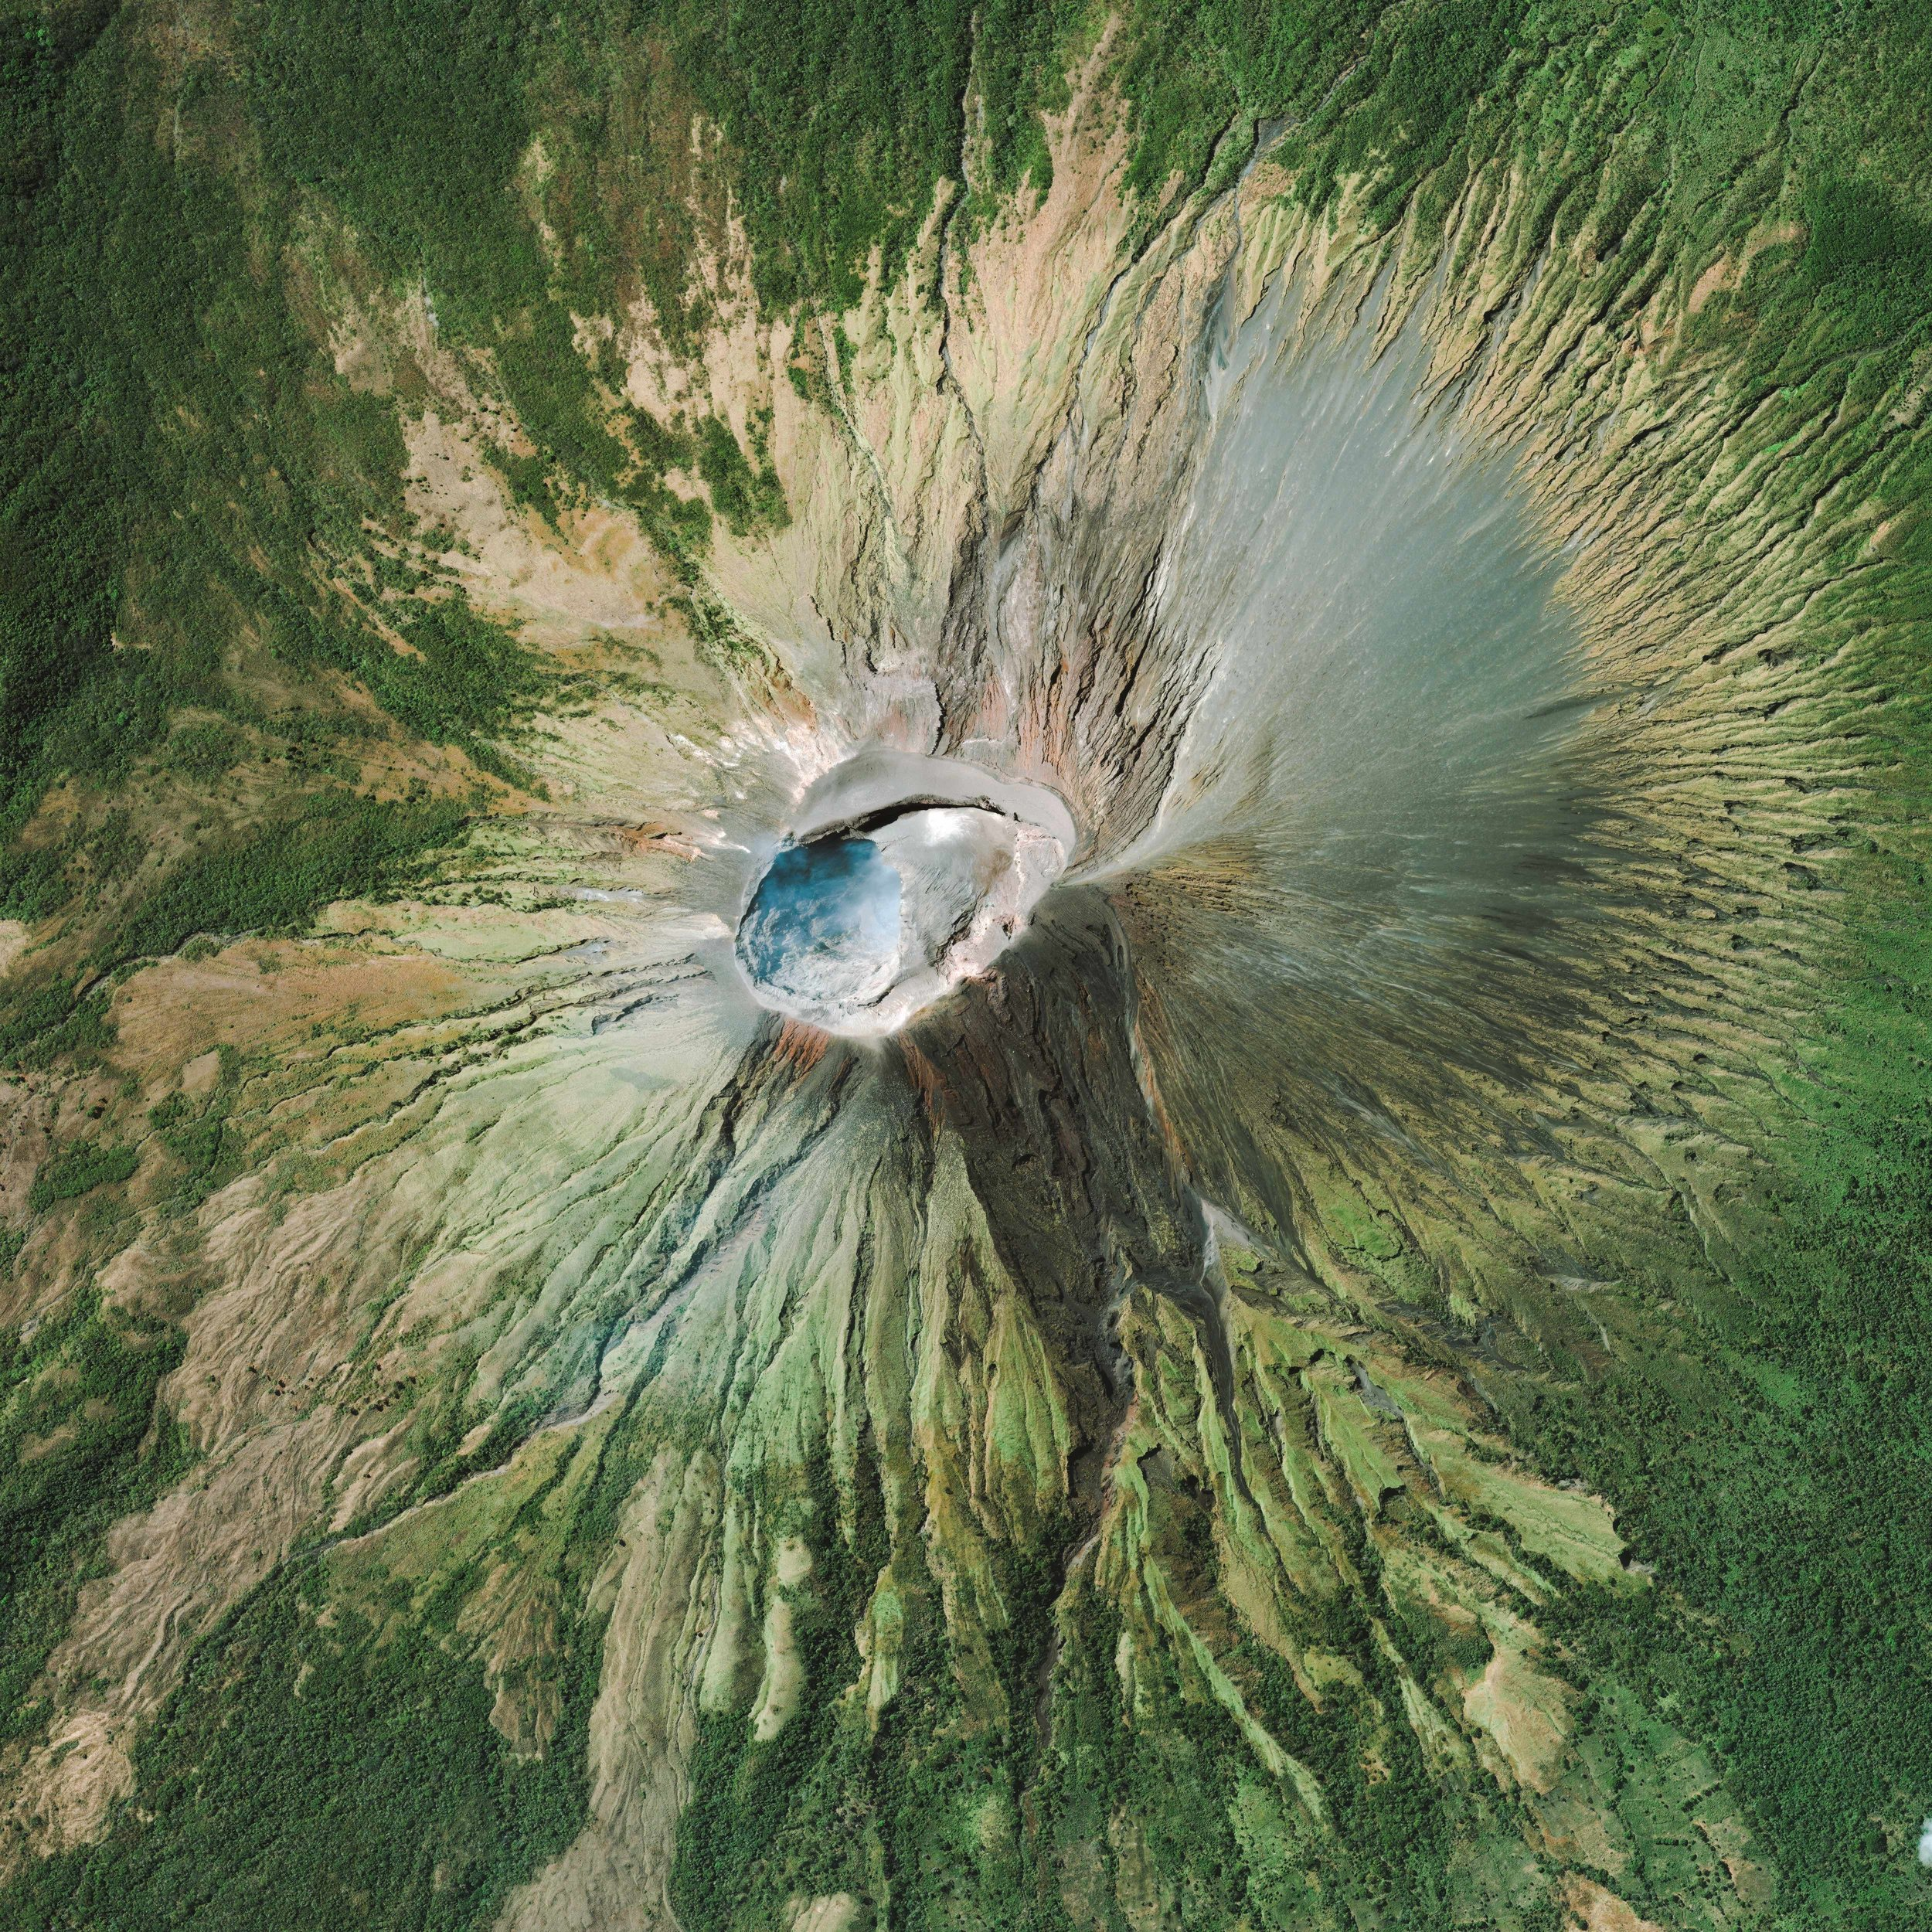 """San Cristóbal Volcano is the highest and one of the most active volcanoes in Nicaragua. Standing at 5,725 feet (1,745 m), it is located in the northwest corner of the country near the city of Chinandega. San Cristóbal has been consistently active since 1997, including an eruption on Christmas Day in 2012 that caused hundreds of nearby residents to evacuate.  12°42'13.8""""N, 87°00'02.8""""W  Source imagery: DigitalGlobe"""